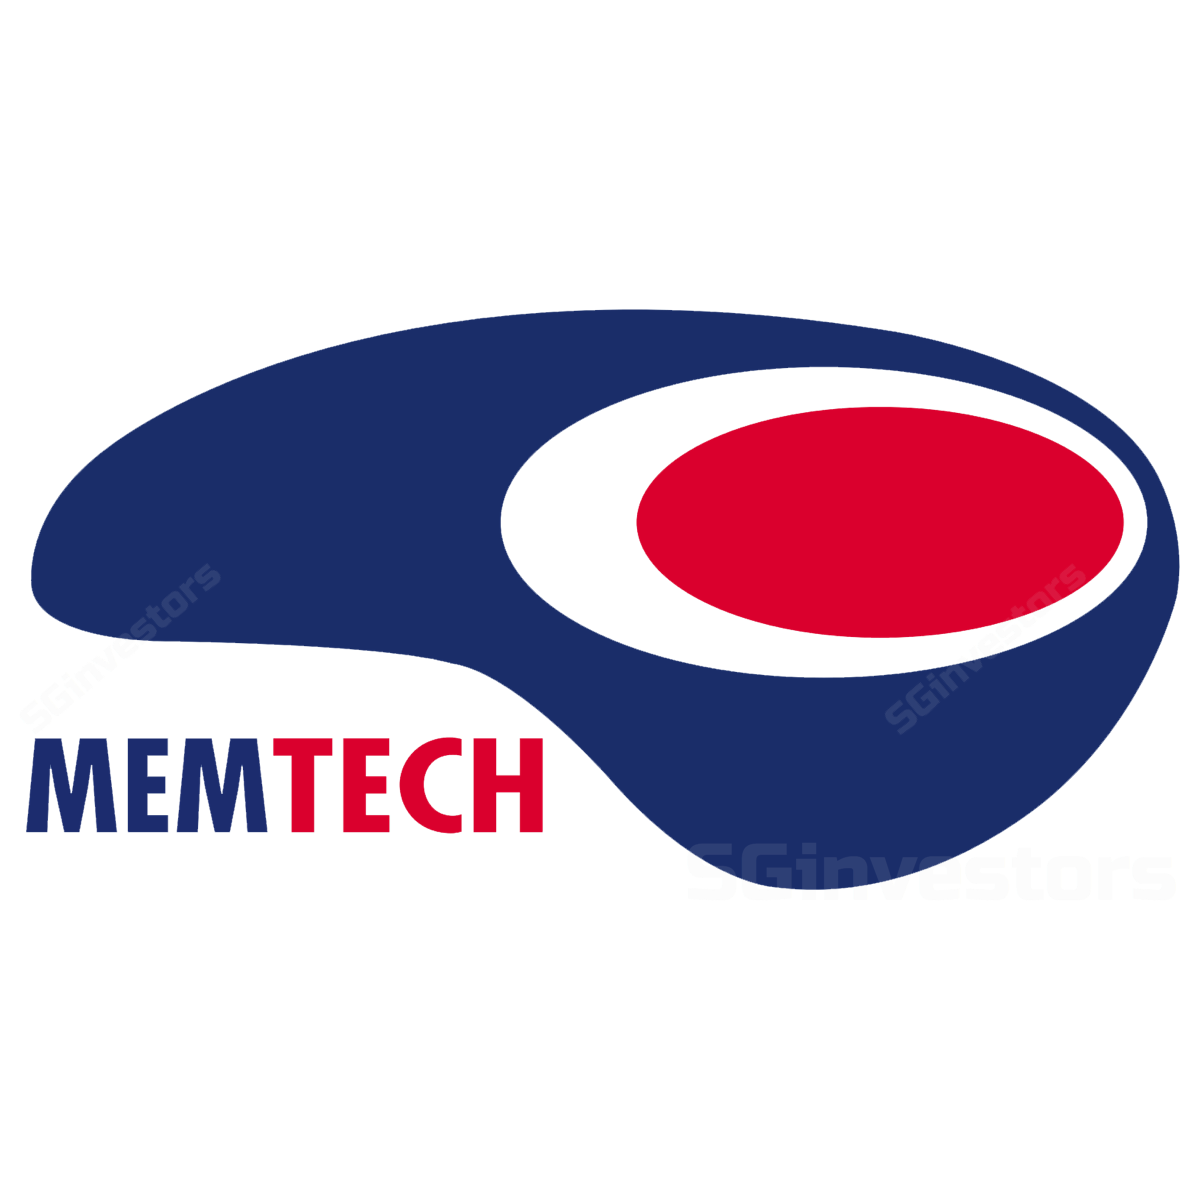 Memtech International - OCBC Investment 2017-01-10: China extends tax cut incentive till end-2017